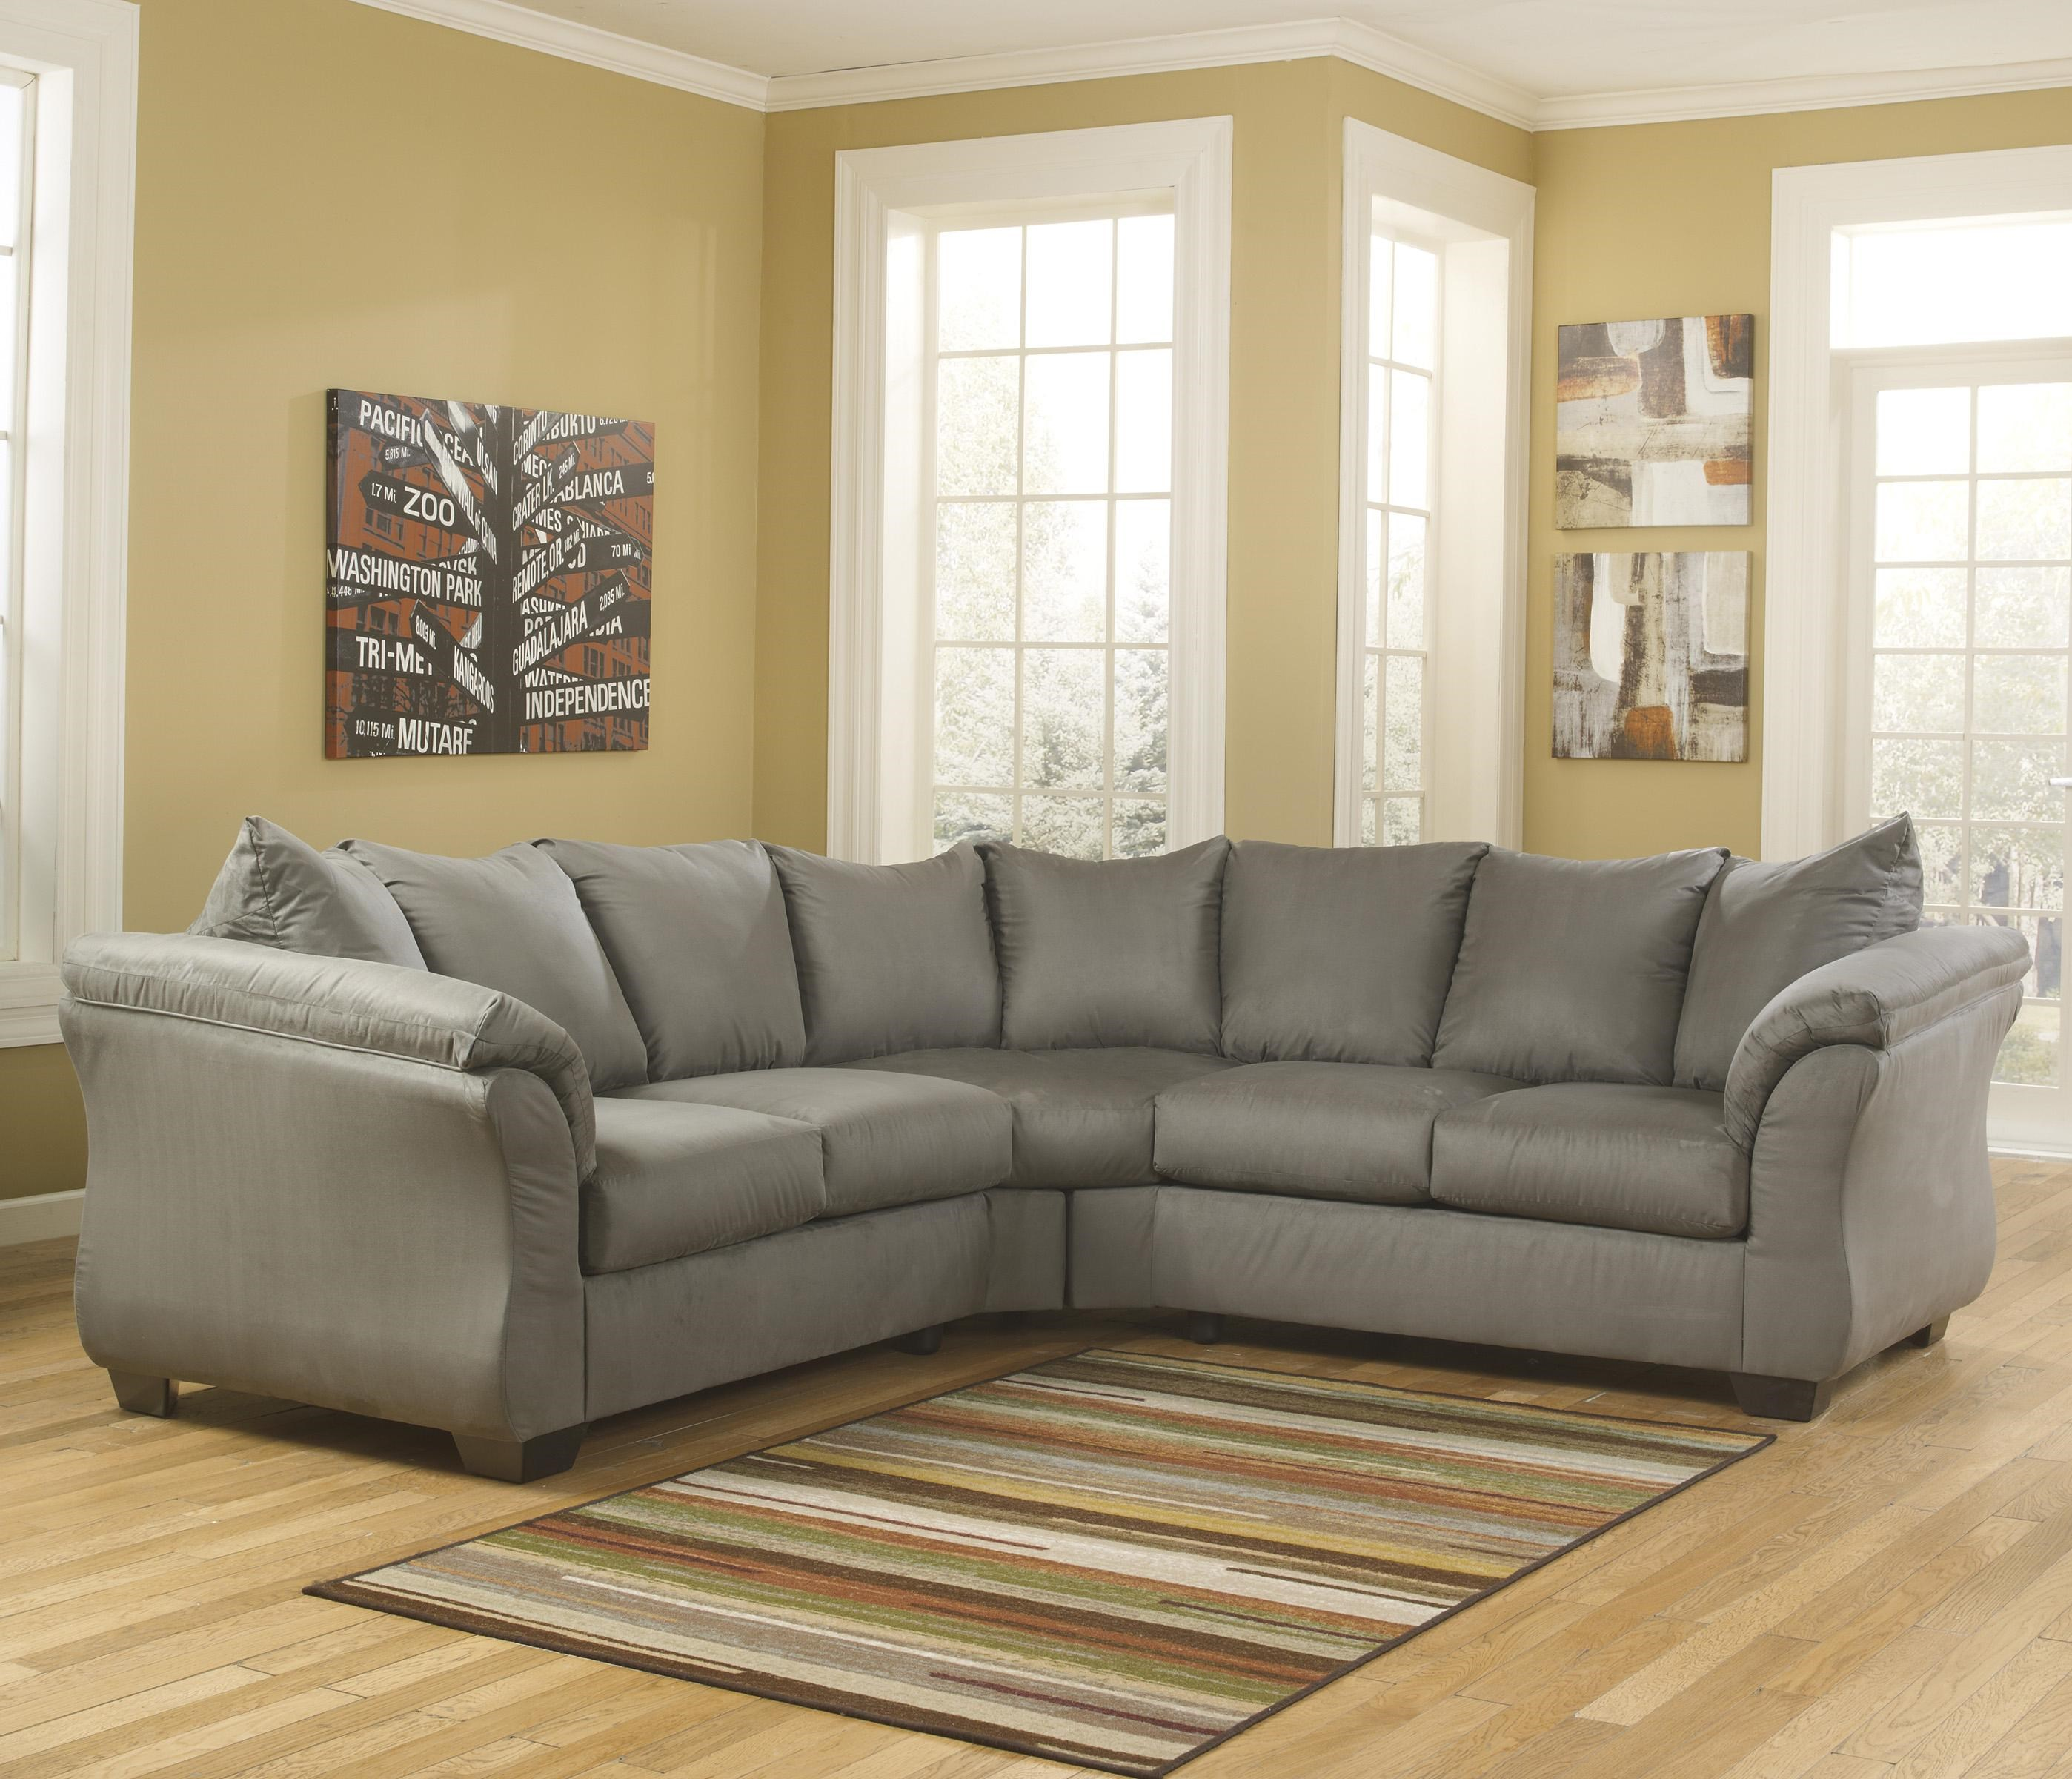 Signature Design By Ashley Darcy   Cobblestone Contemporary Sectional Sofa  With Sweeping Pillow Arms